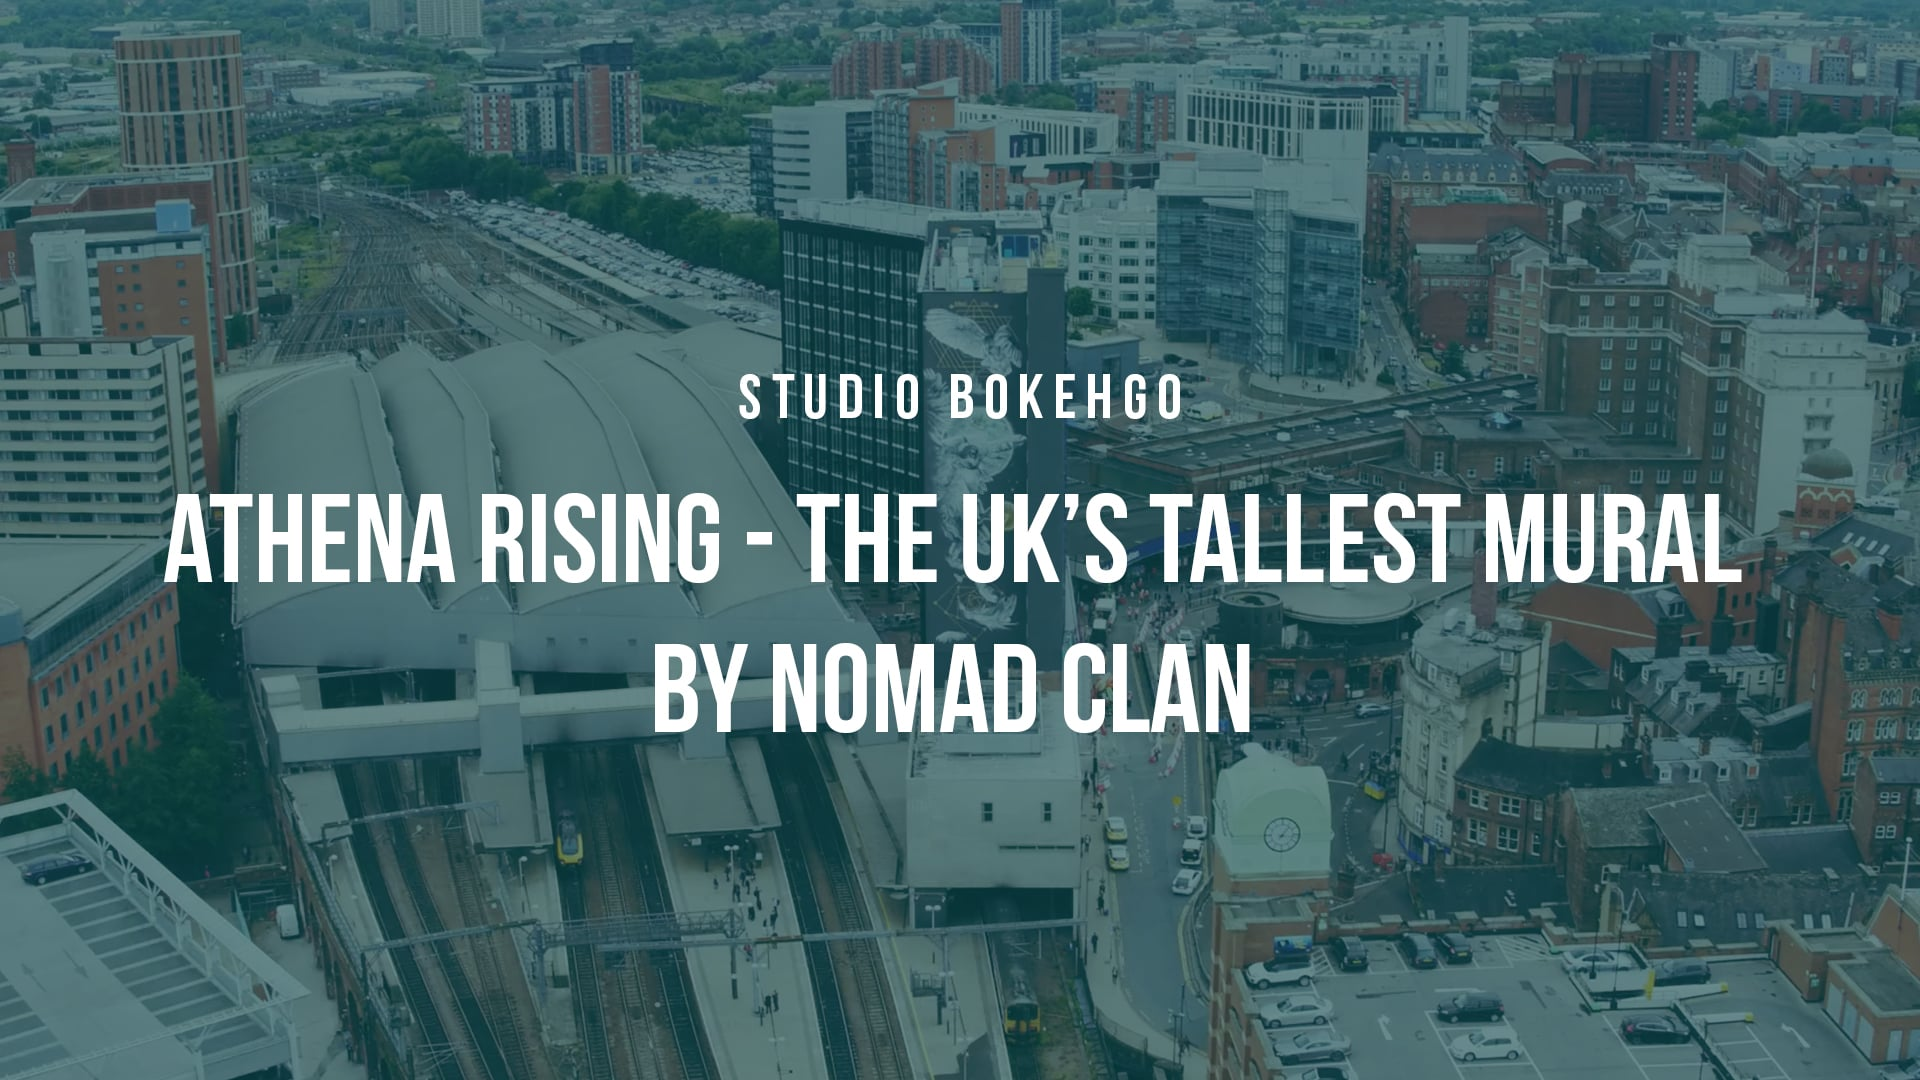 Athena Rising - The UK's Tallest Mural